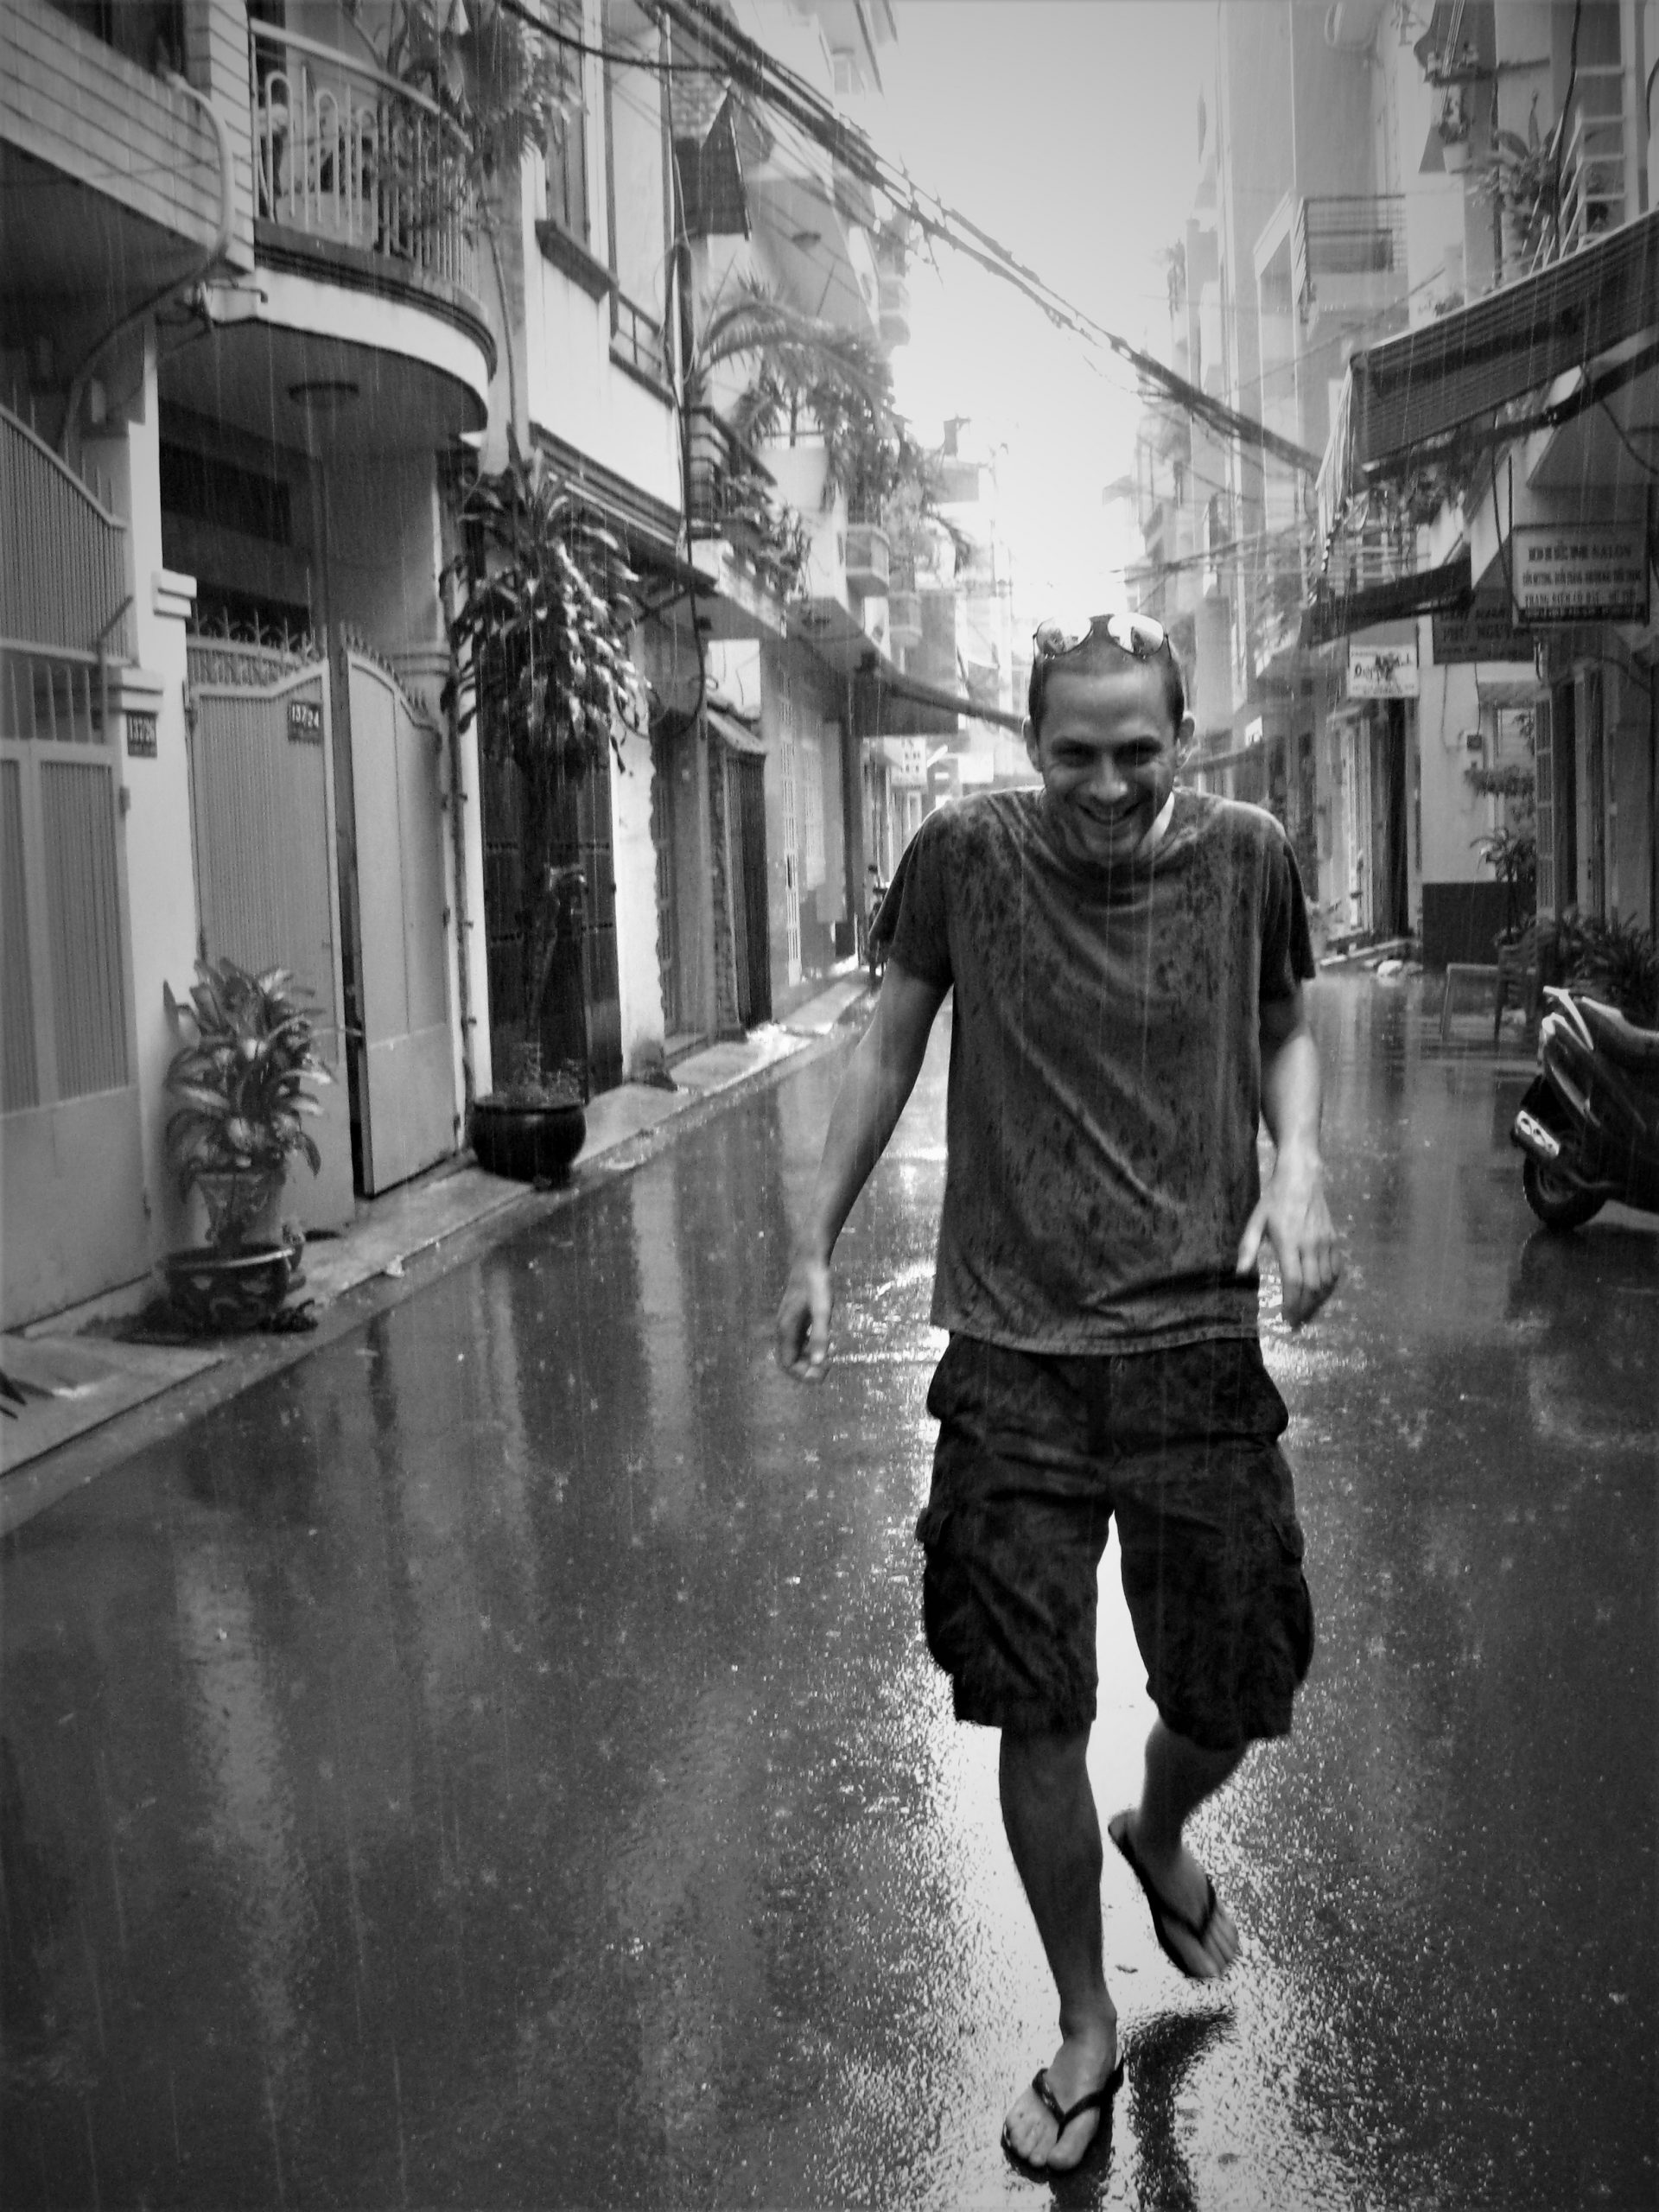 First Rains: An Ode to the Monsoon in Vietnam